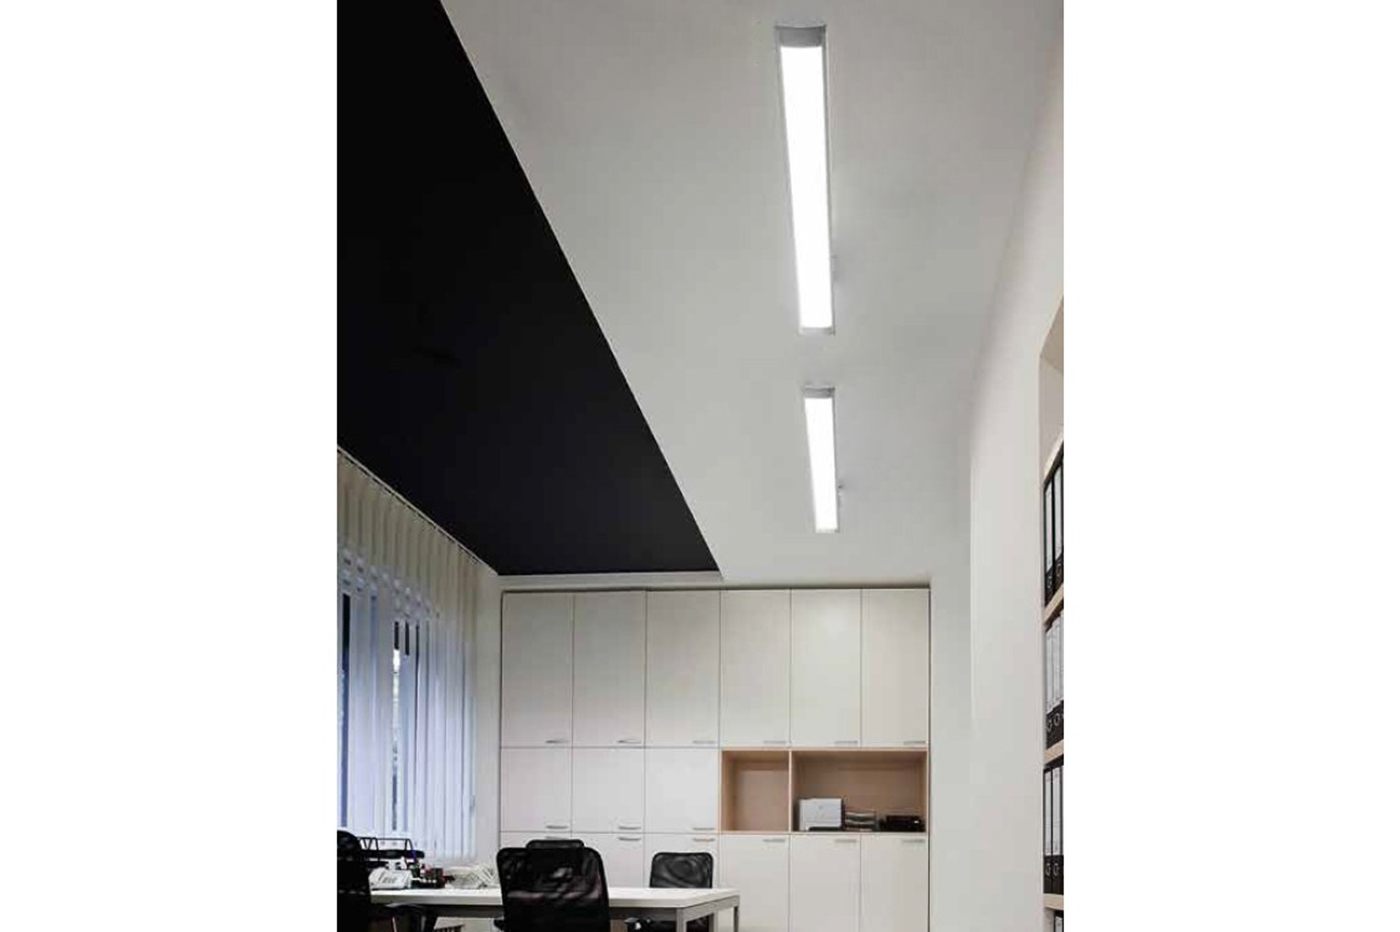 Plafoniere Led A Soffitto Moderno : Bes 24561 plafoniere beselettronica plafoniera led 36w luce